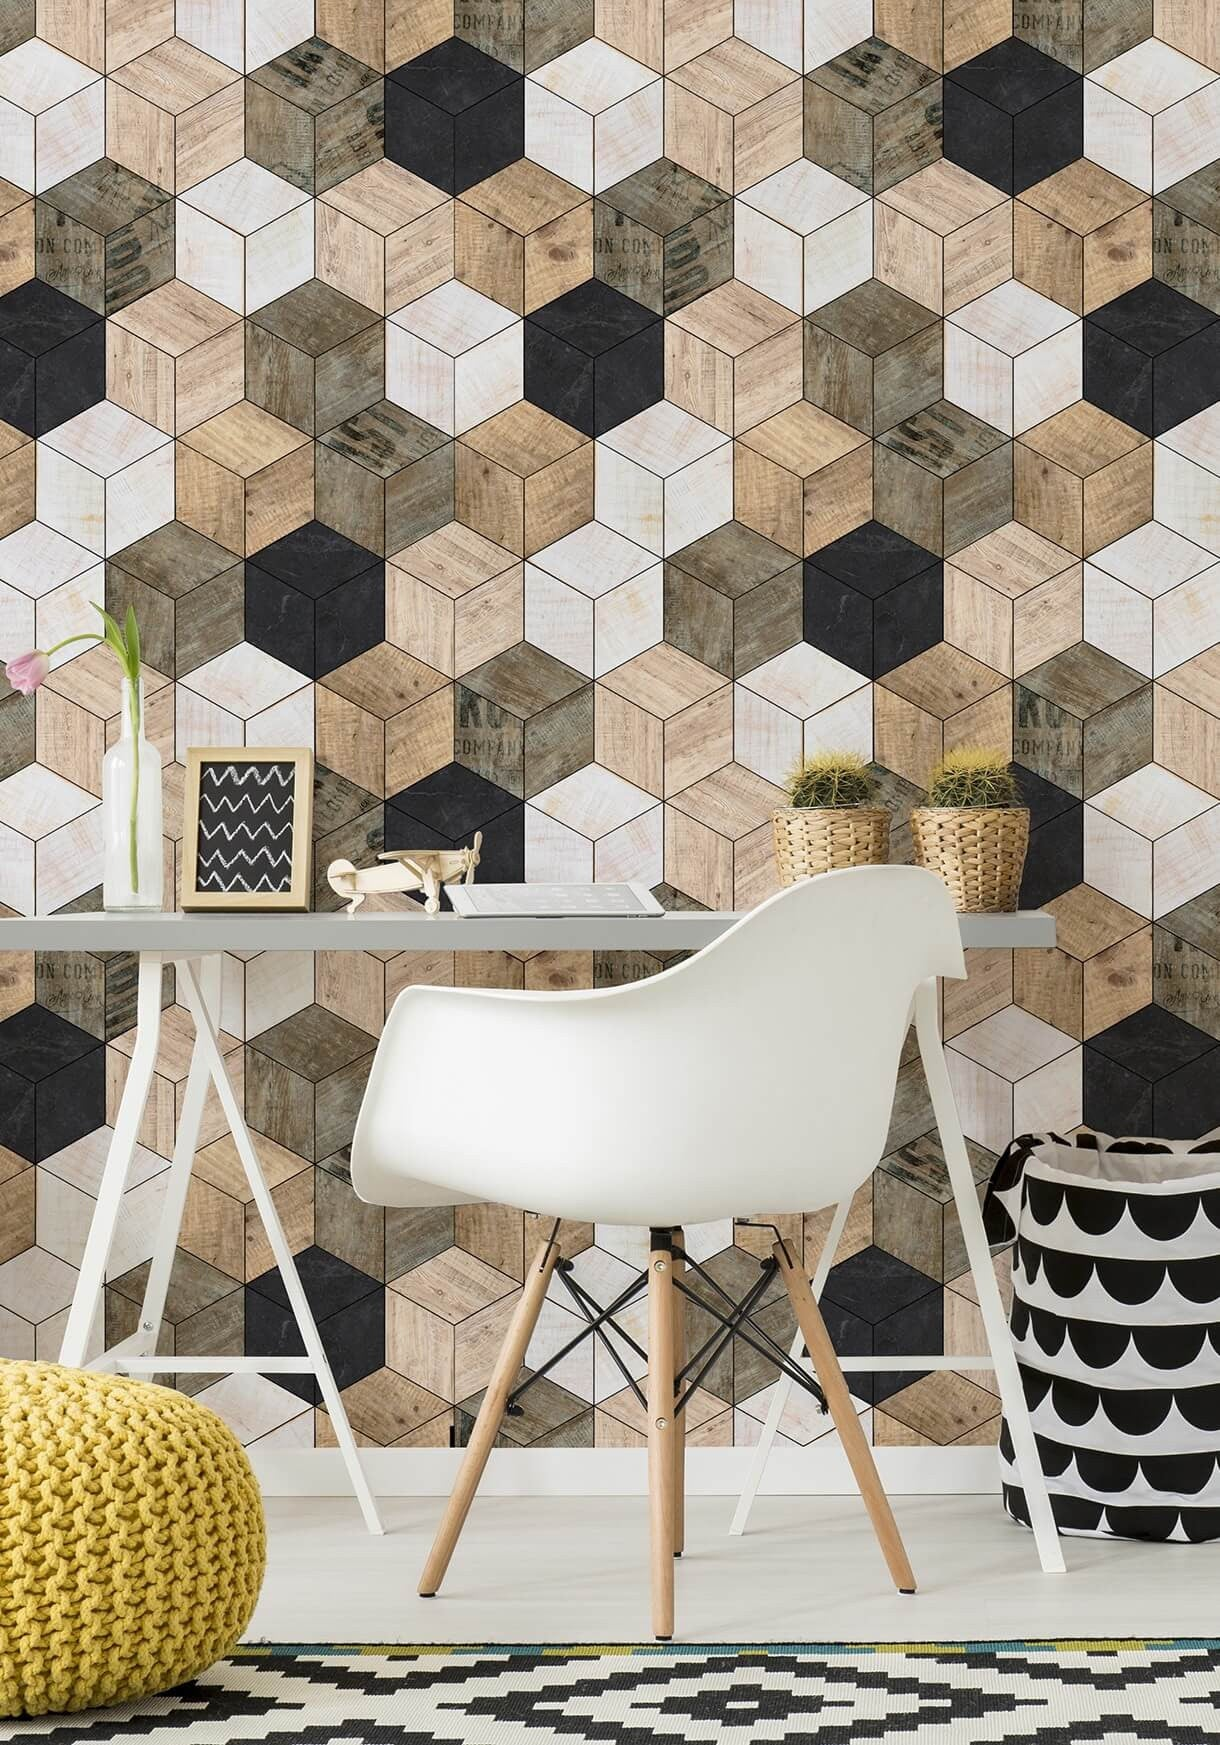 Geometric Timber Cube Wallpaper From The Kemra Collection Design By Milton King